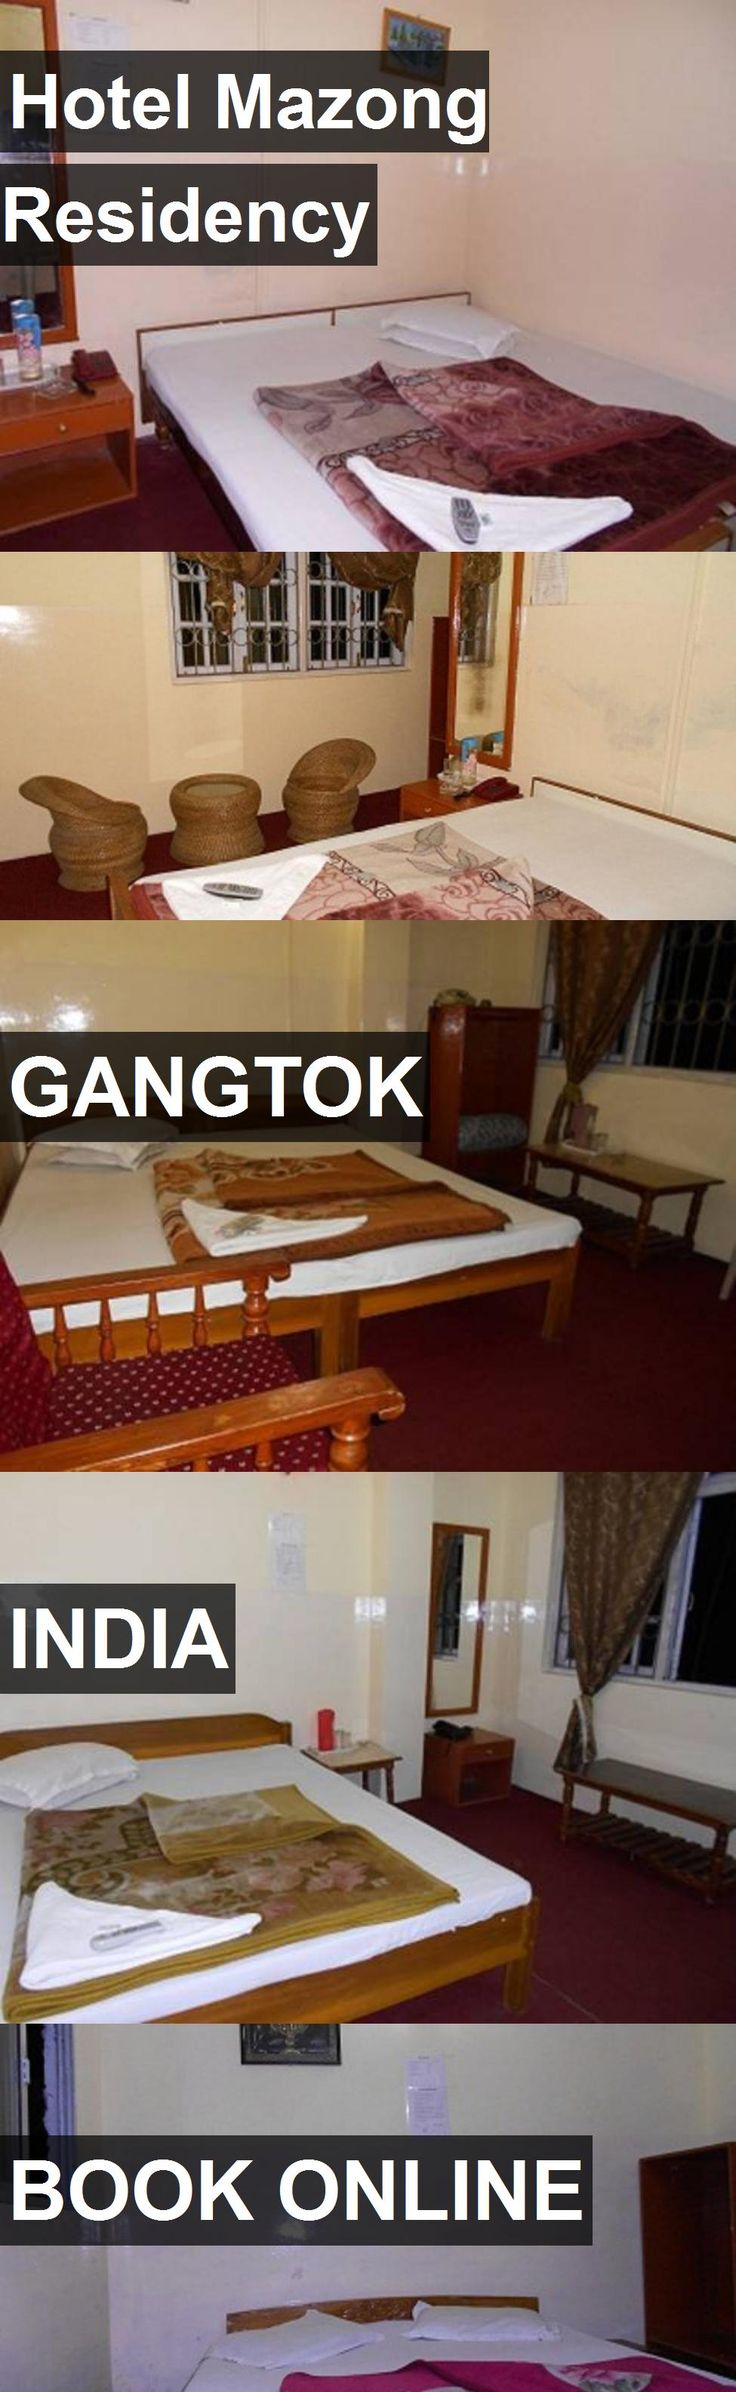 Hotel Mazong Residency in Gangtok, India. For more information, photos, reviews and best prices please follow the link. #India #Gangtok #travel #vacation #hotel